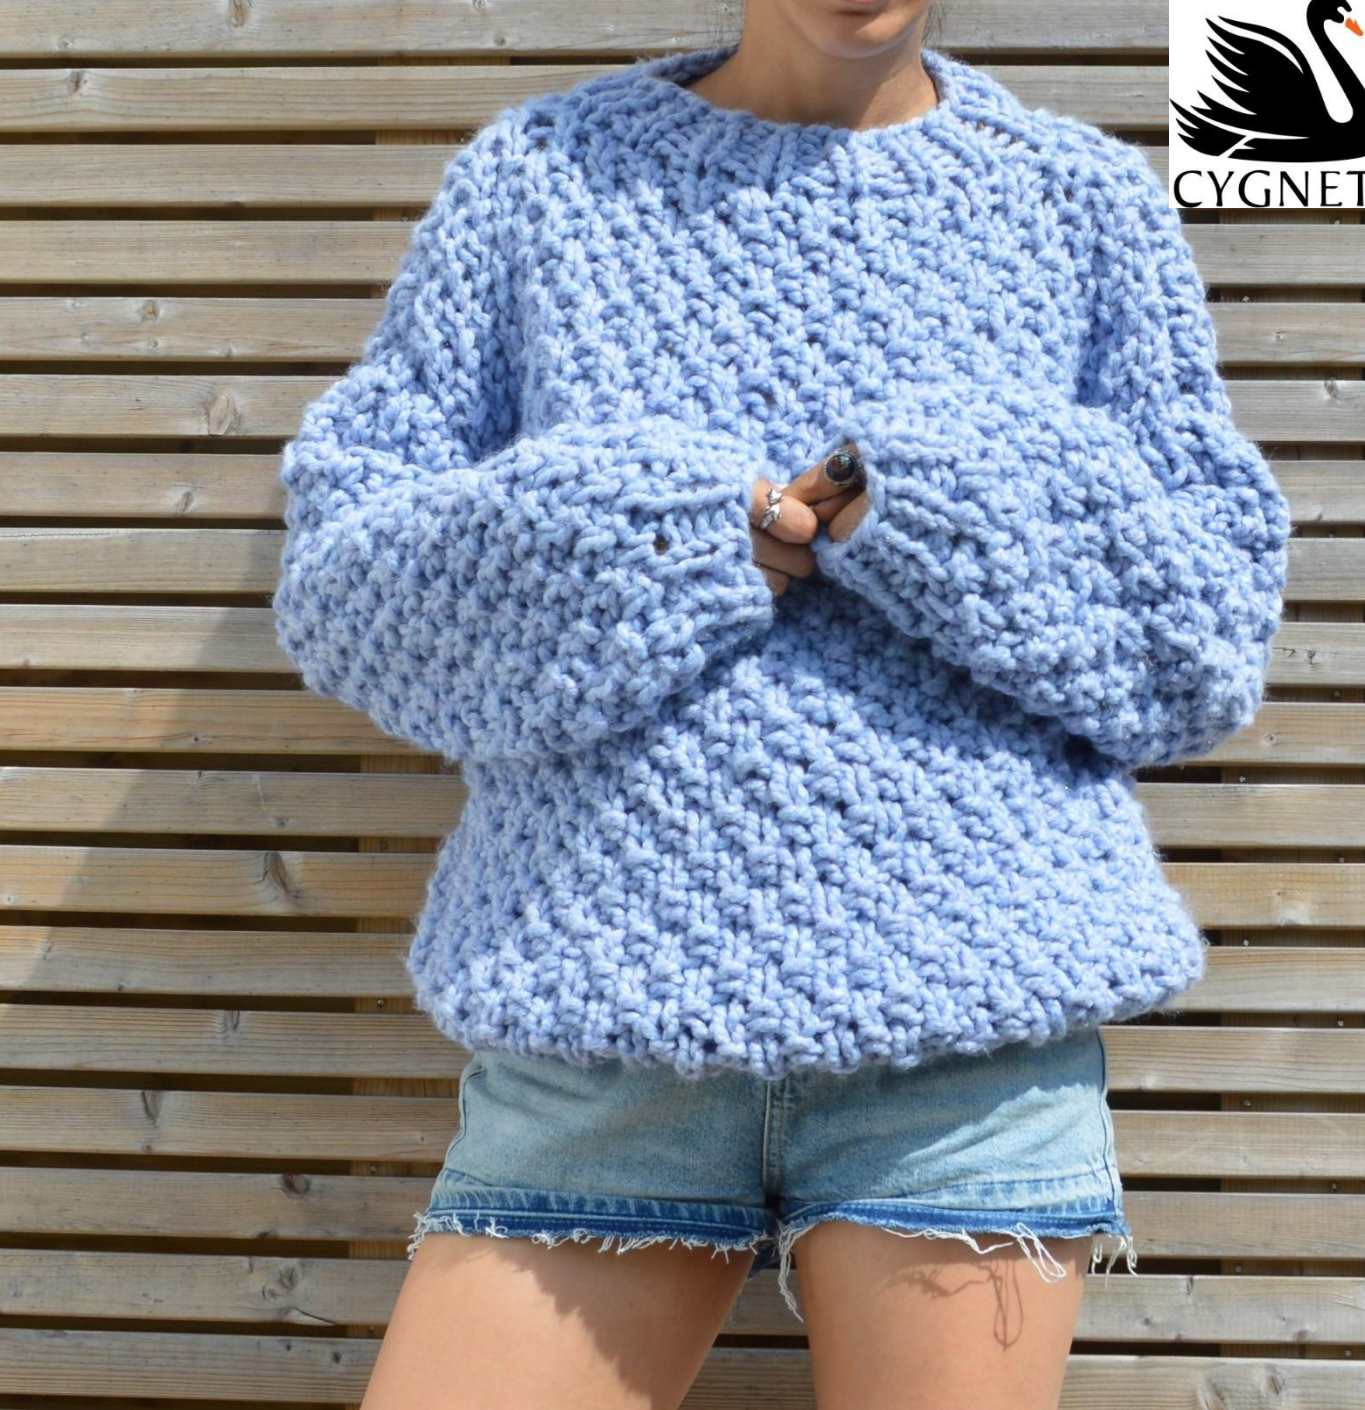 Unique Seriously Chunky Free Sweater Knitting Pattern ⋆ Knitting Bee Free Chunky Knitting Patterns Of Brilliant 46 Ideas Free Chunky Knitting Patterns